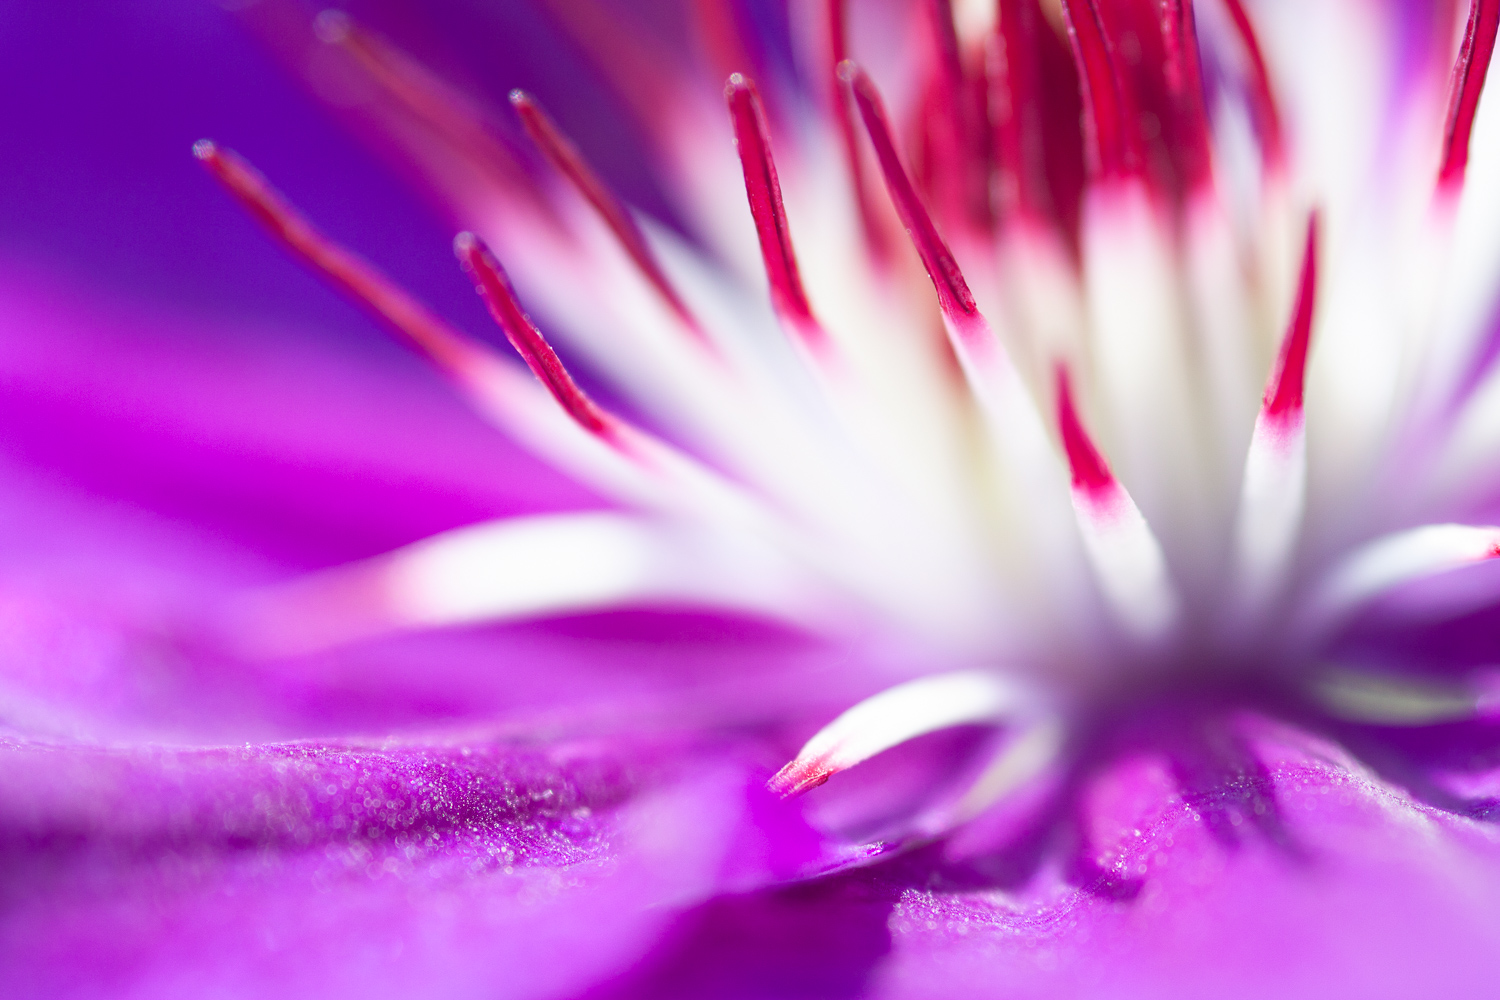 5 Things I Wish I'd Known Before Starting Nature Photography - flower close up